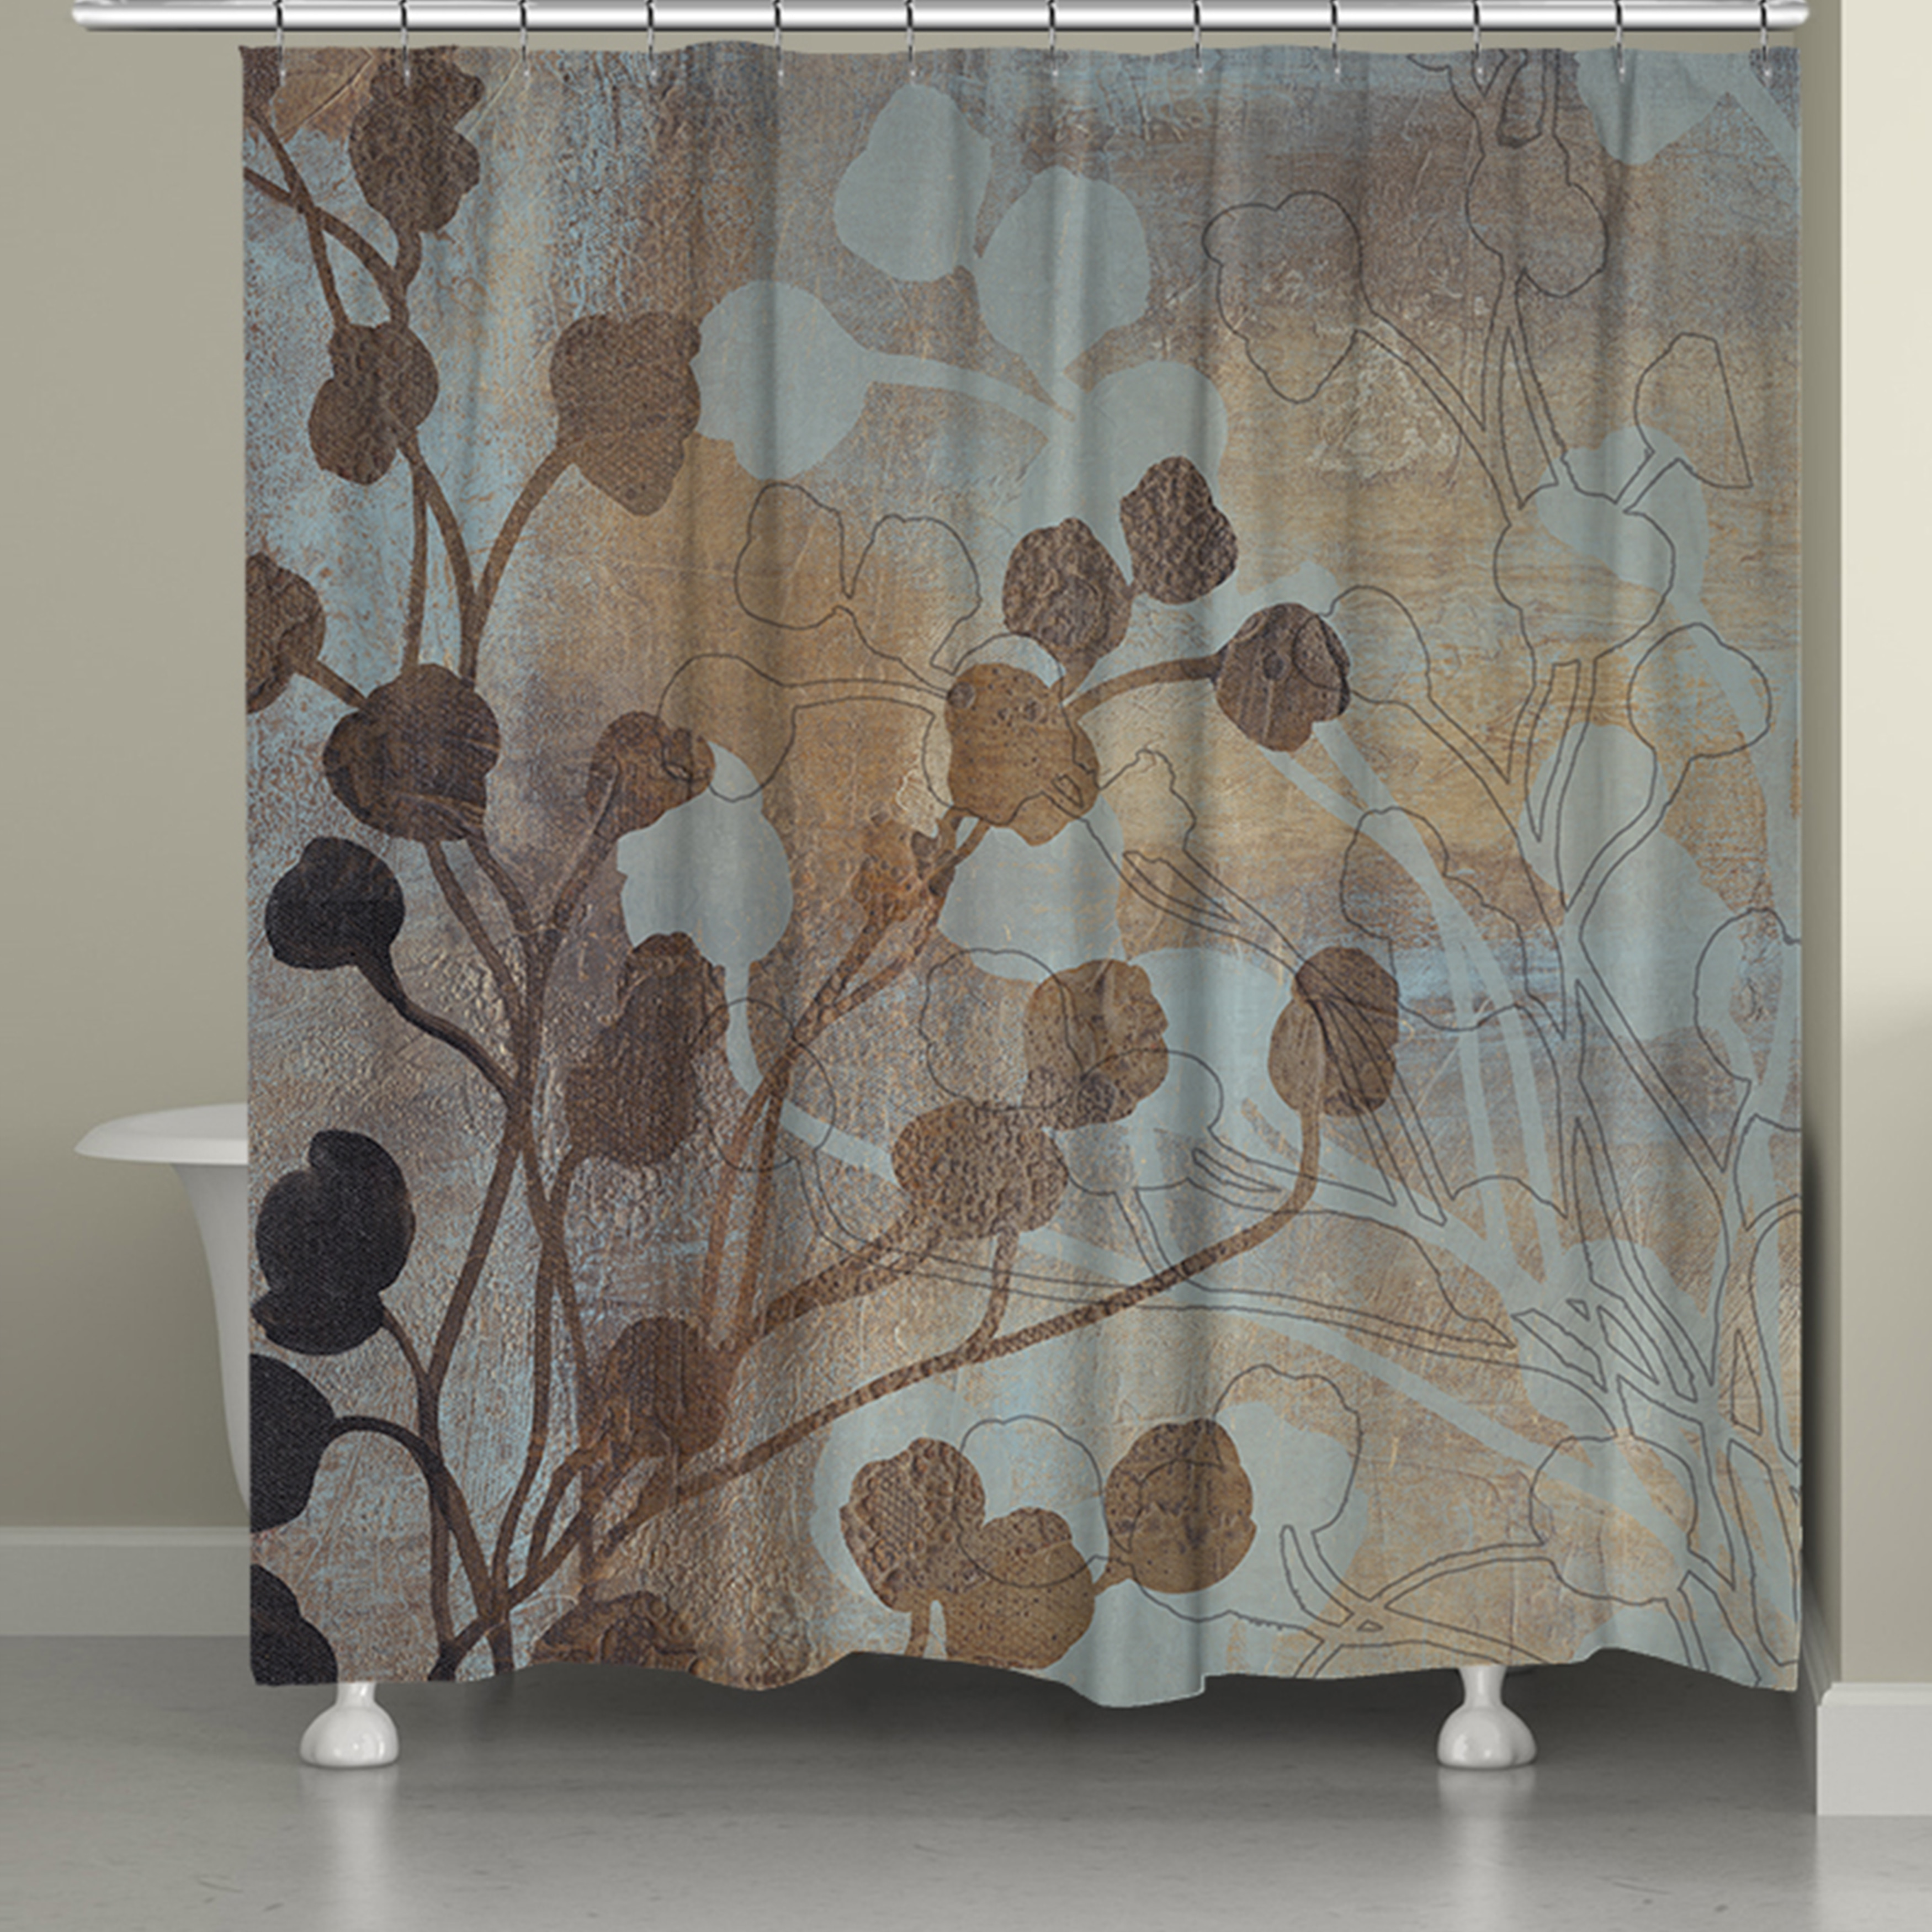 74 Shower Curtain Laural Home Bronze Gold Spa Shower Curtain 71 Inch X 74 Inch